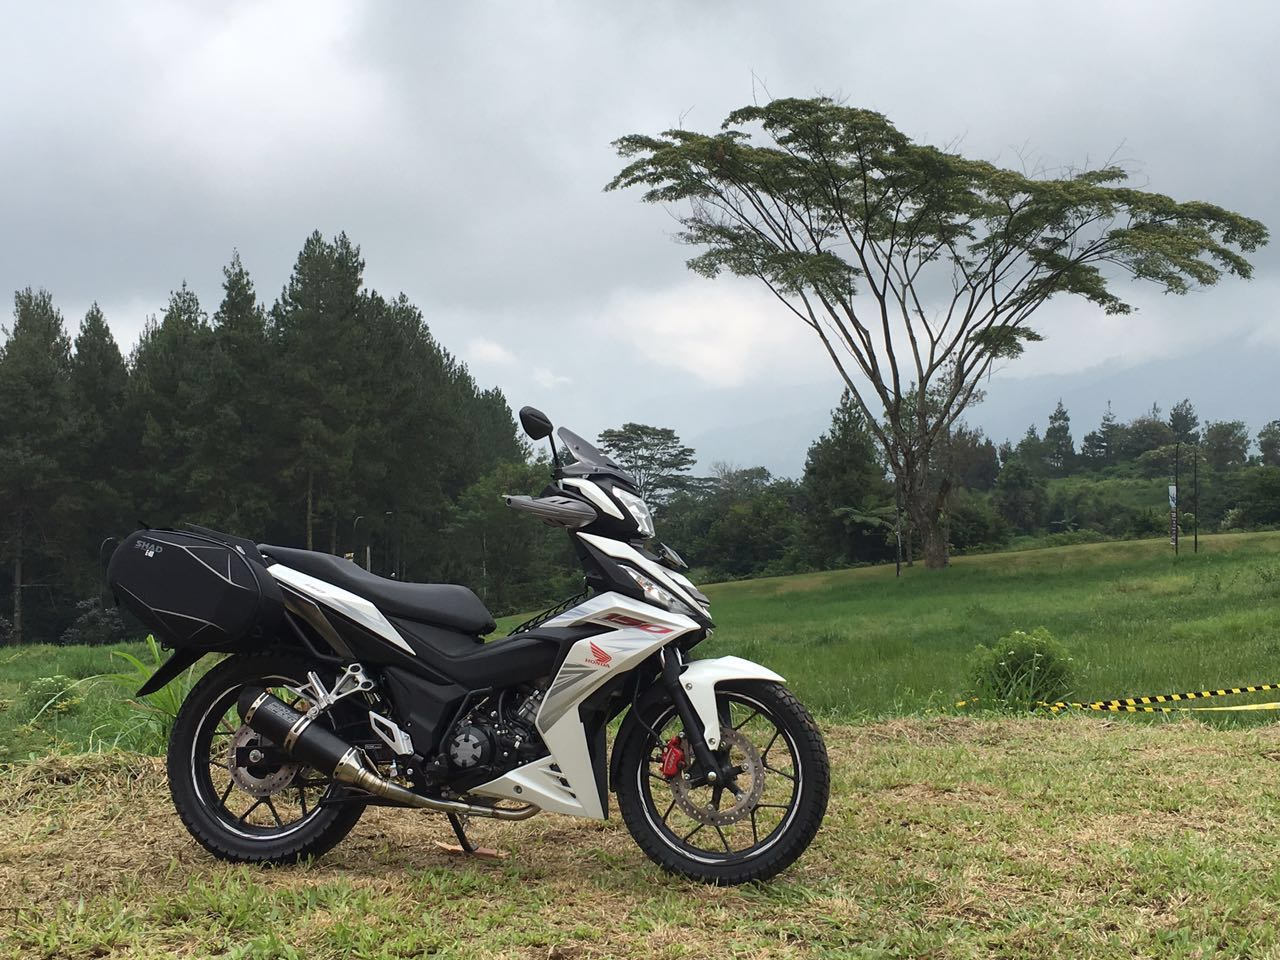 Gallery Foto All New Honda Supra GTR 150 Standar Dan Modifikasi